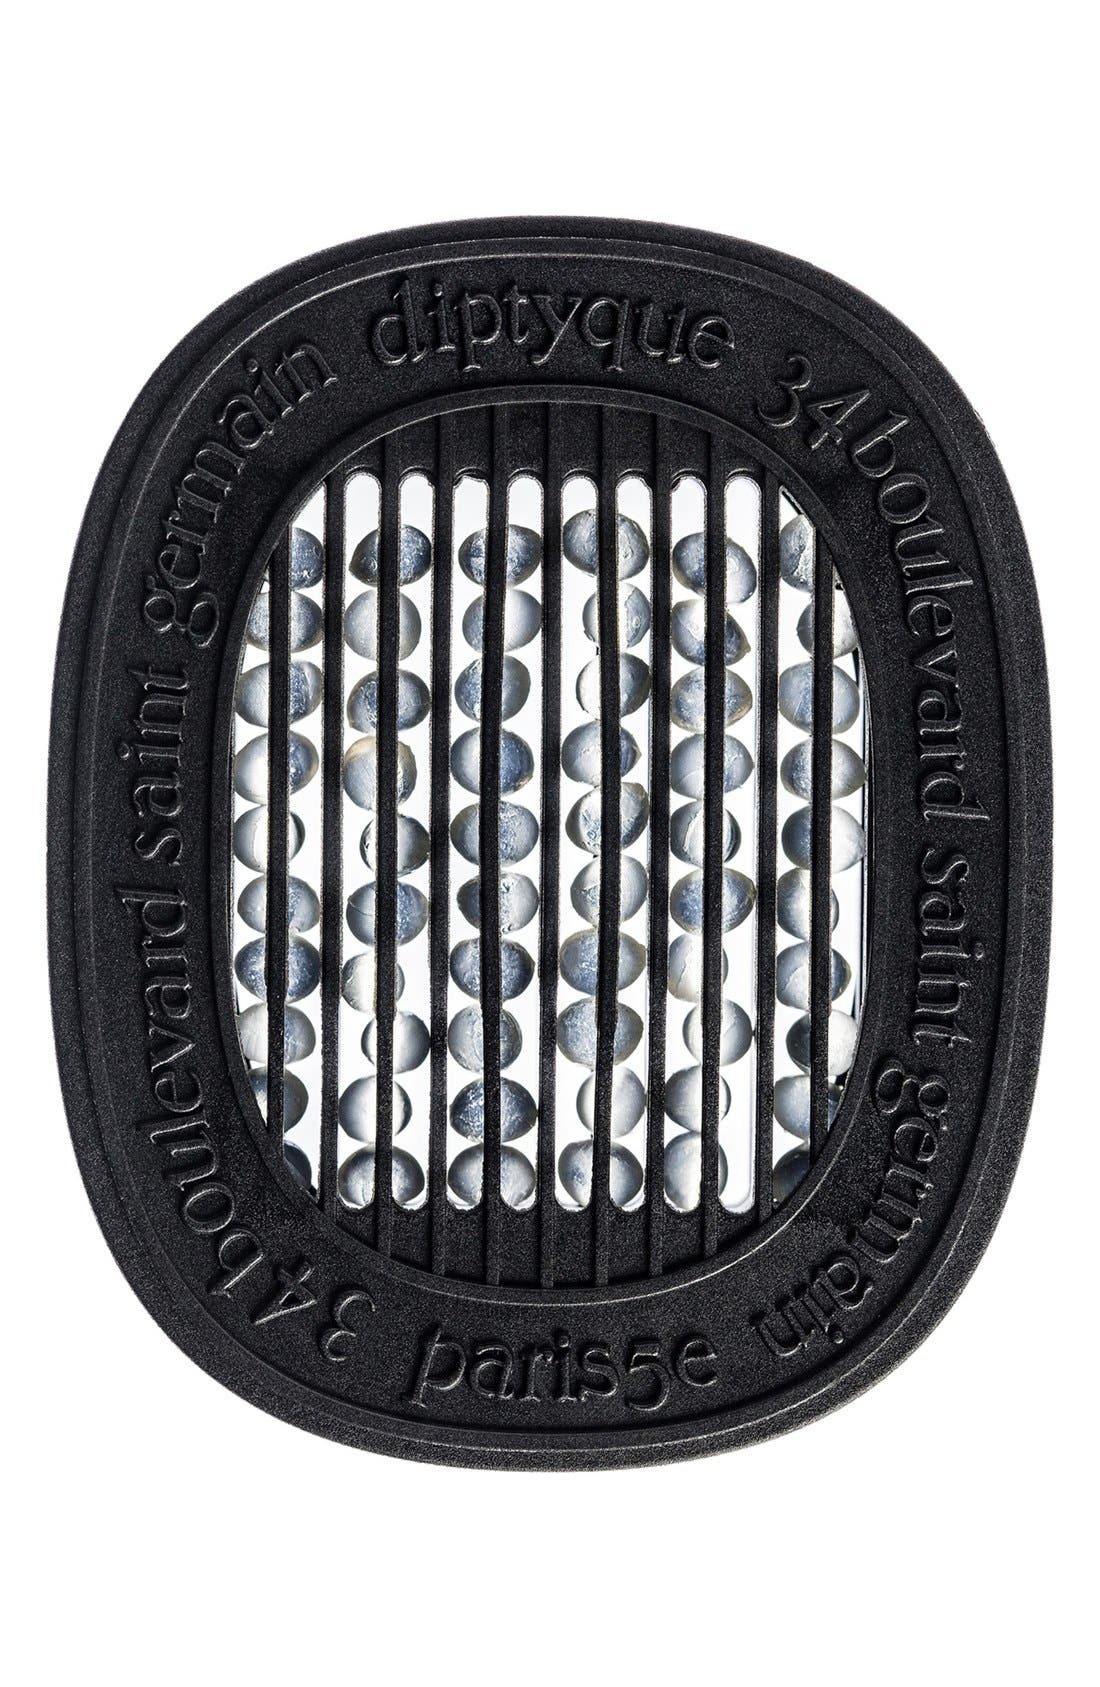 Main Image - diptyque 'Figuier' Electric Diffuser Cartridge